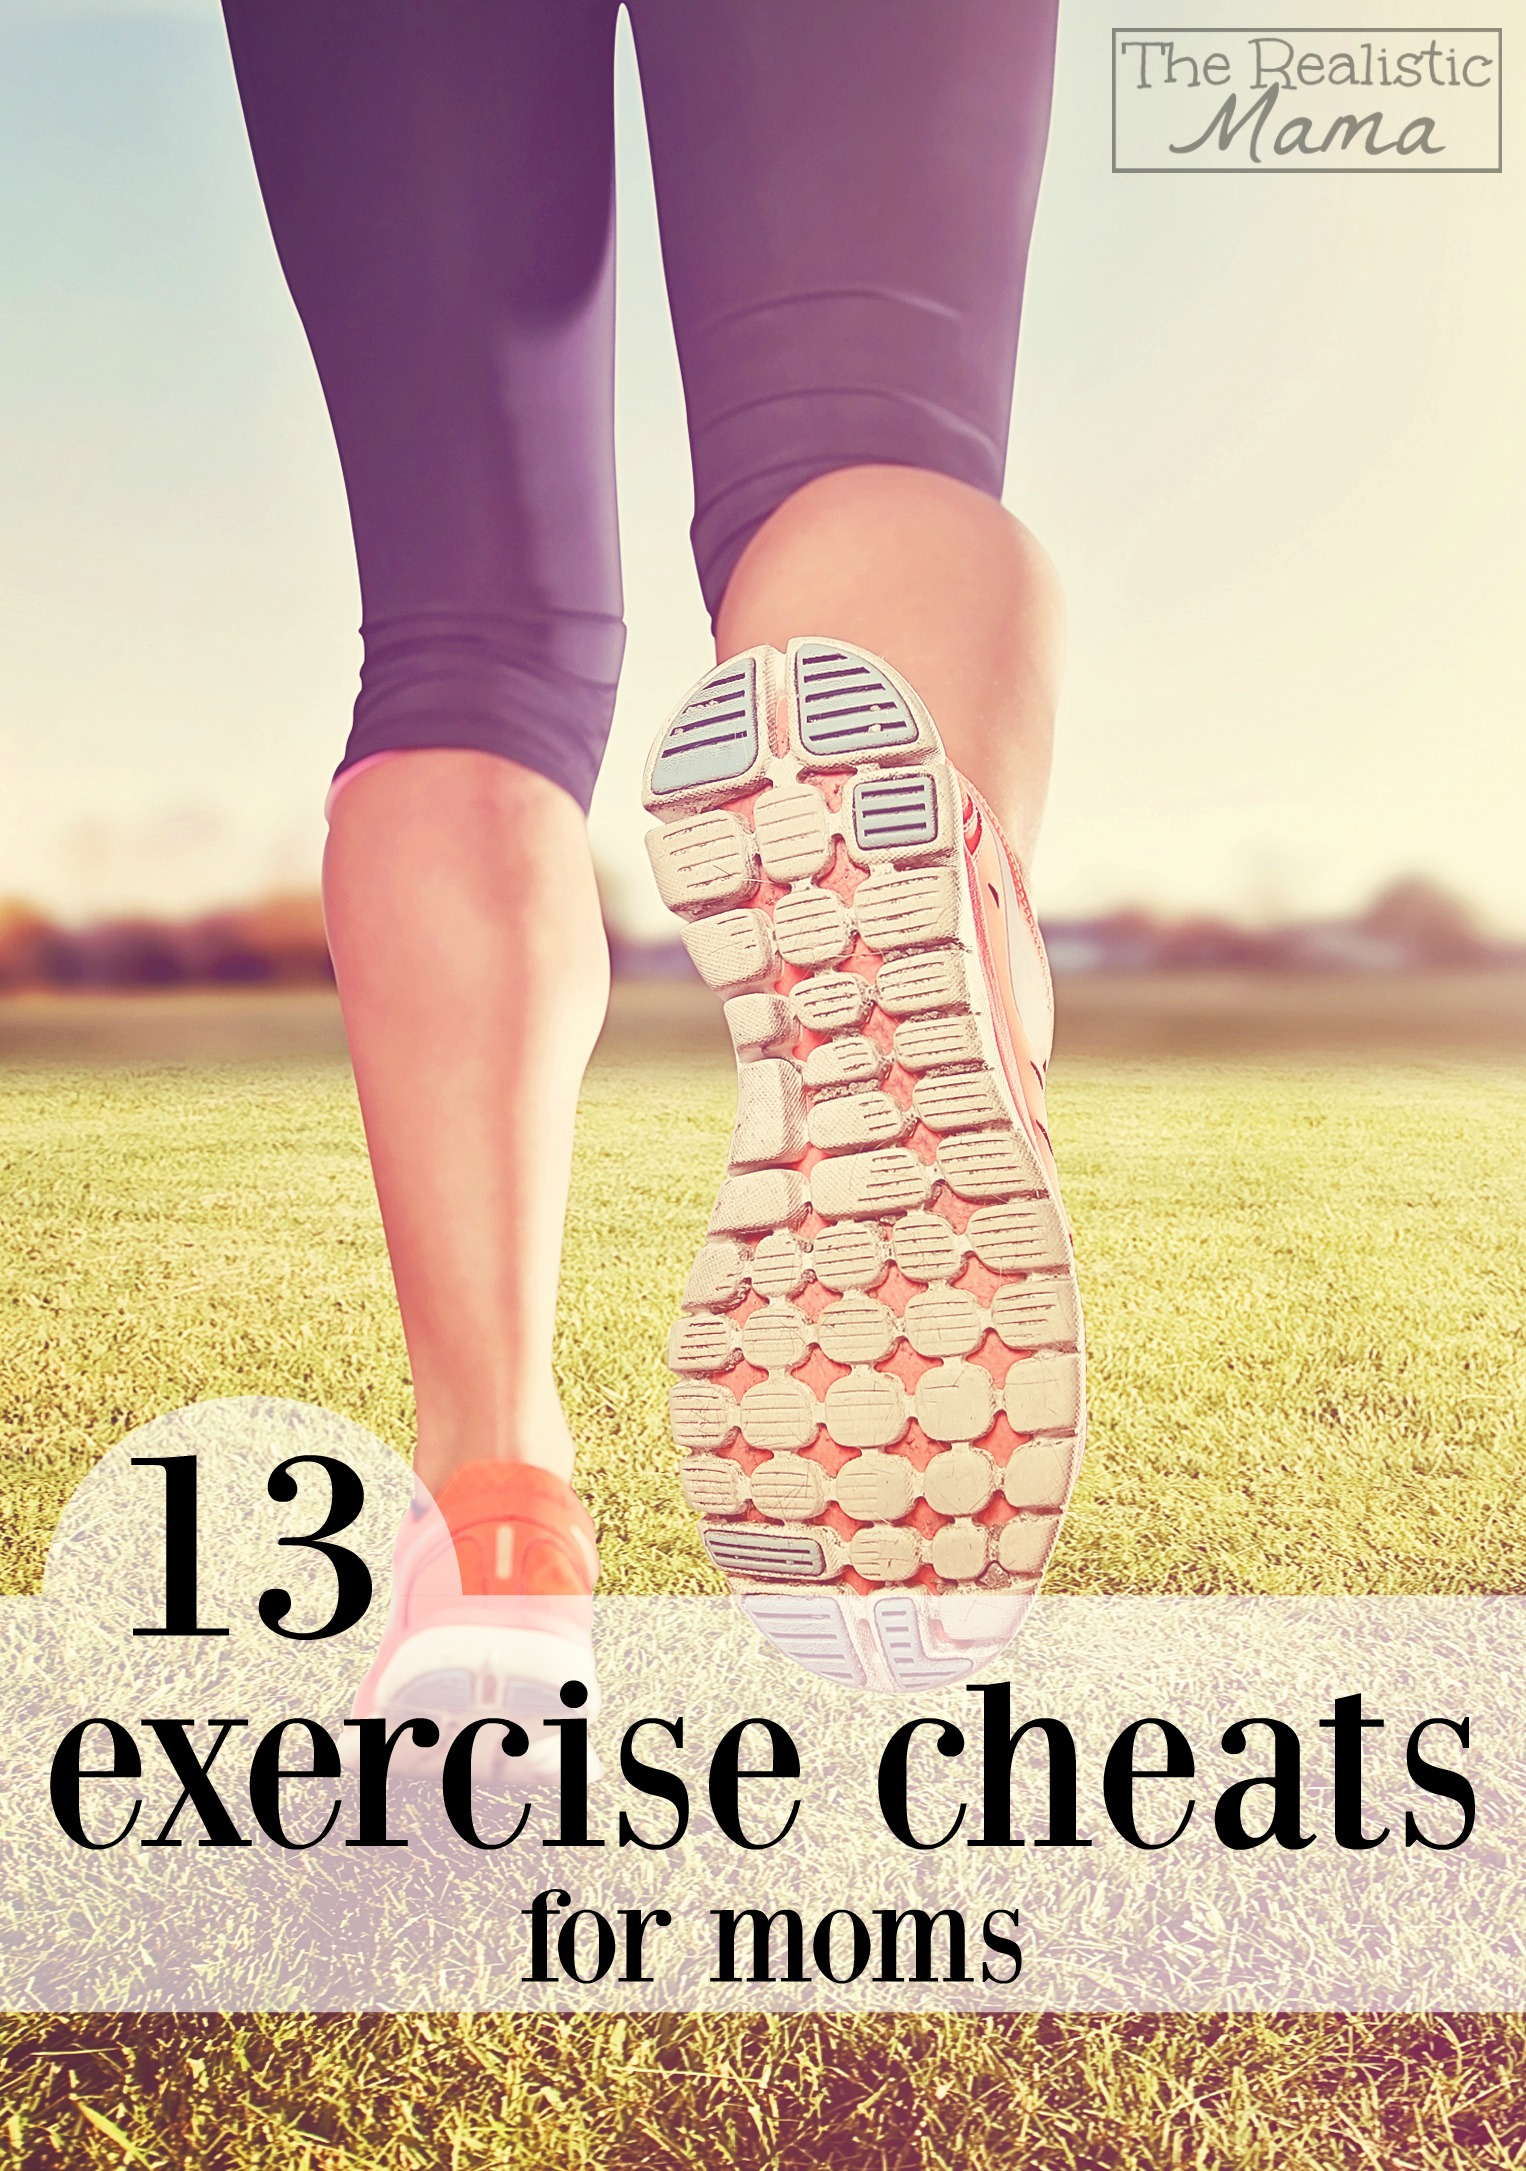 13 Exercise Cheats for Moms - Love This!